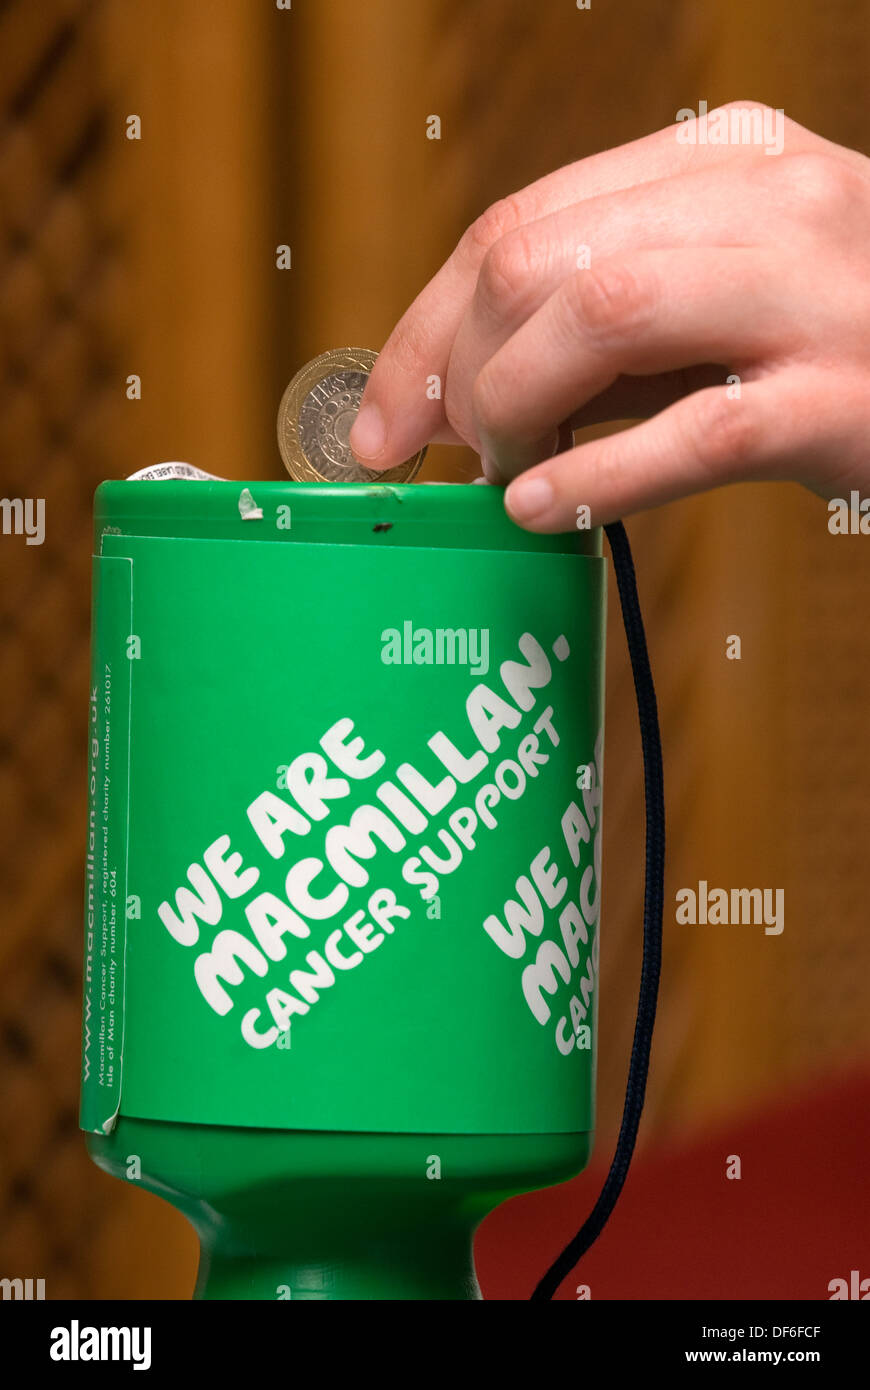 Making a £2 donation to Macmillan Cancer Support, Surrey, UK. - Stock Image